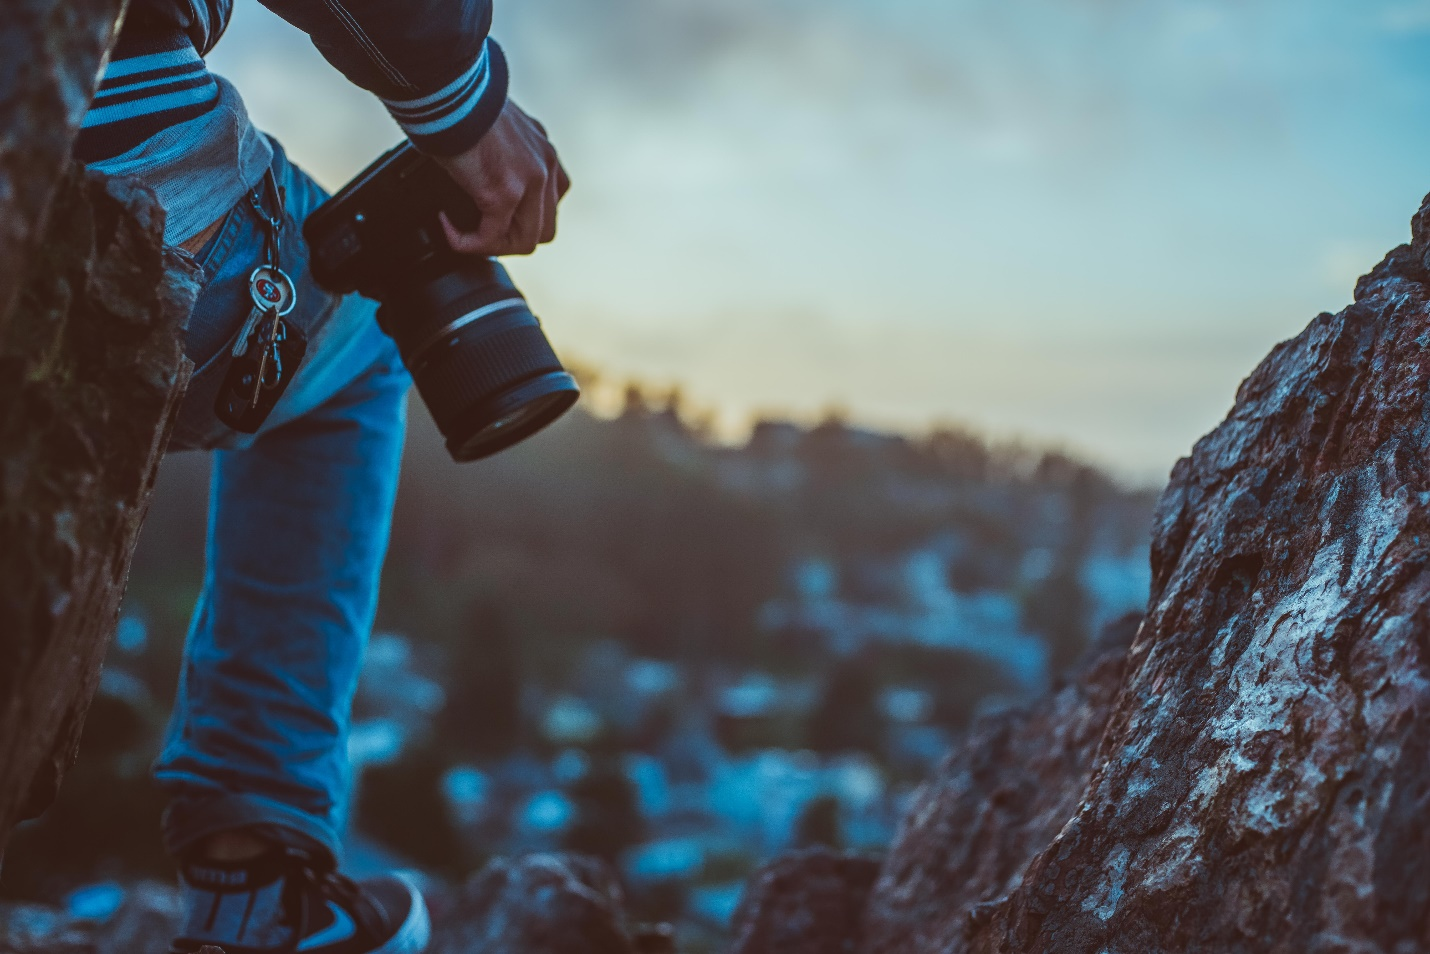 Top 15 Types of Best Photography You Should Know